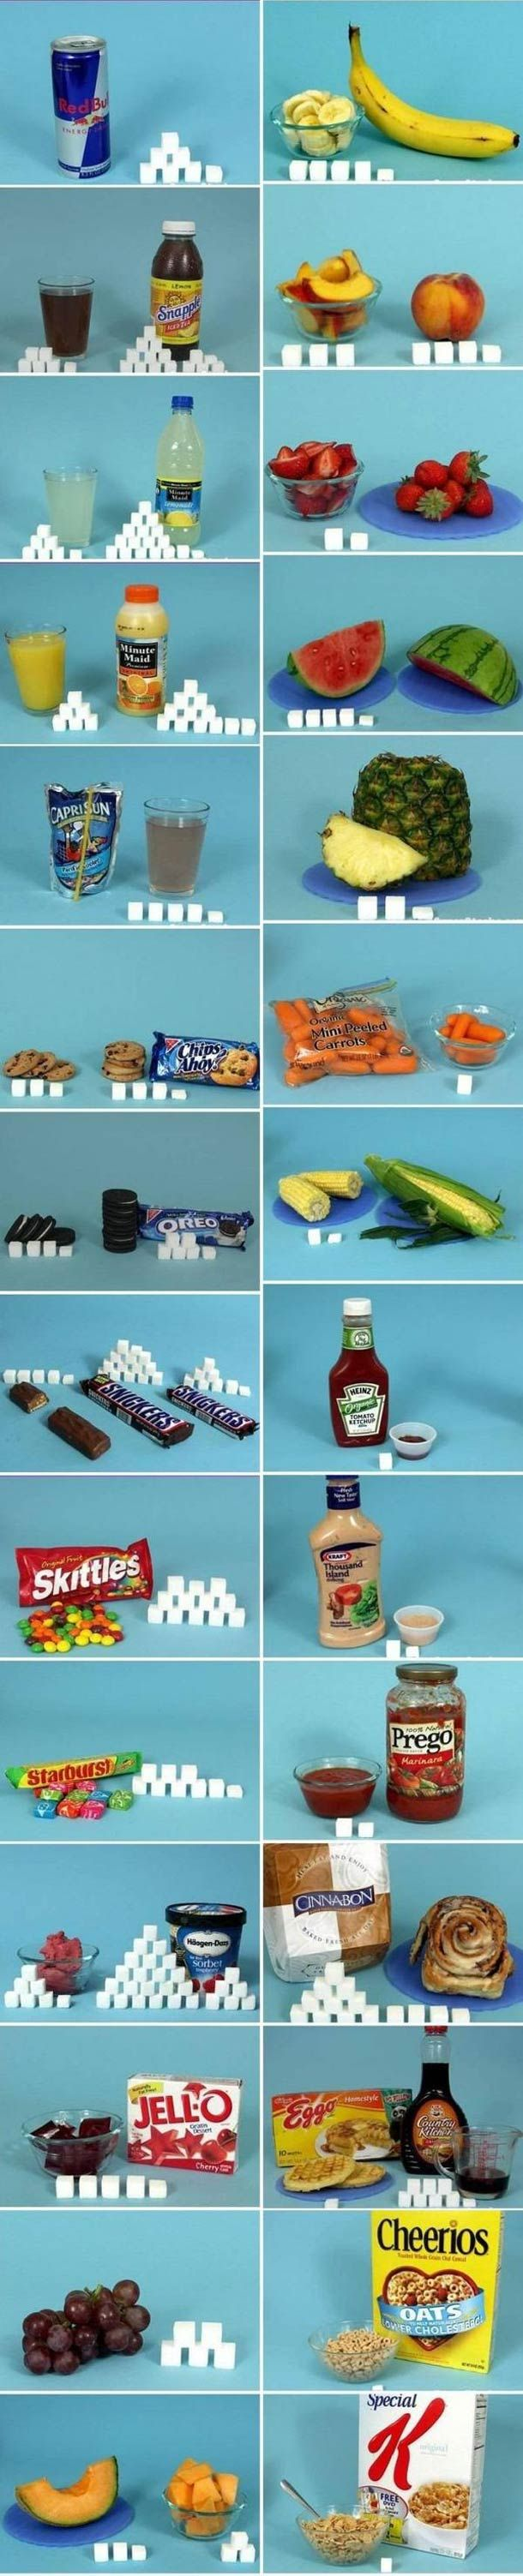 The amount of sugar in food, expressed in sugar cubes: Fit, Nutrition, Stuff, Sugar Cubes, Sugar Cubs, Food And Drinks, Eating, Healthy, Kid